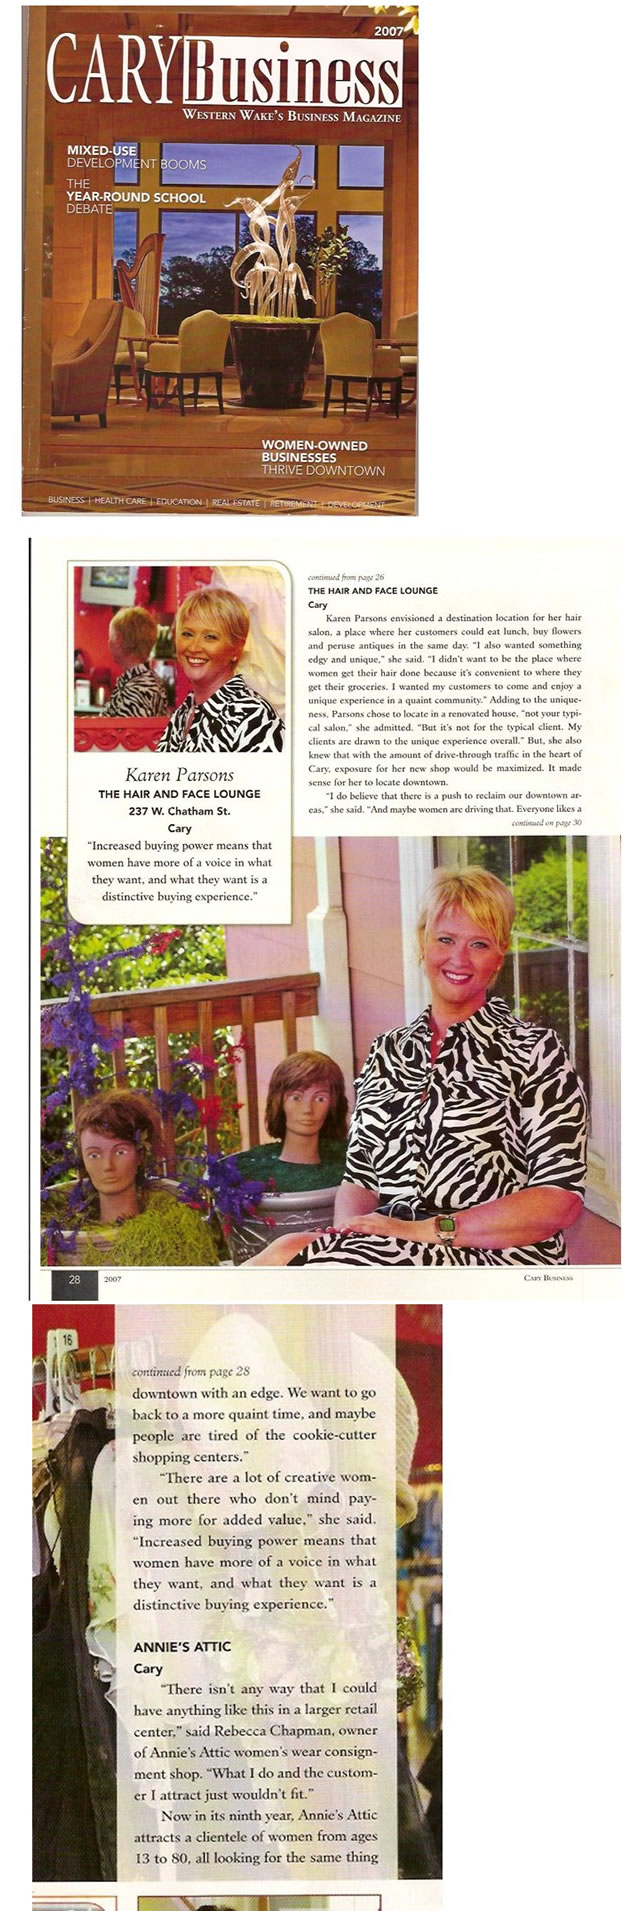 Cary Business Magazine article about the Hair and Face Lounge